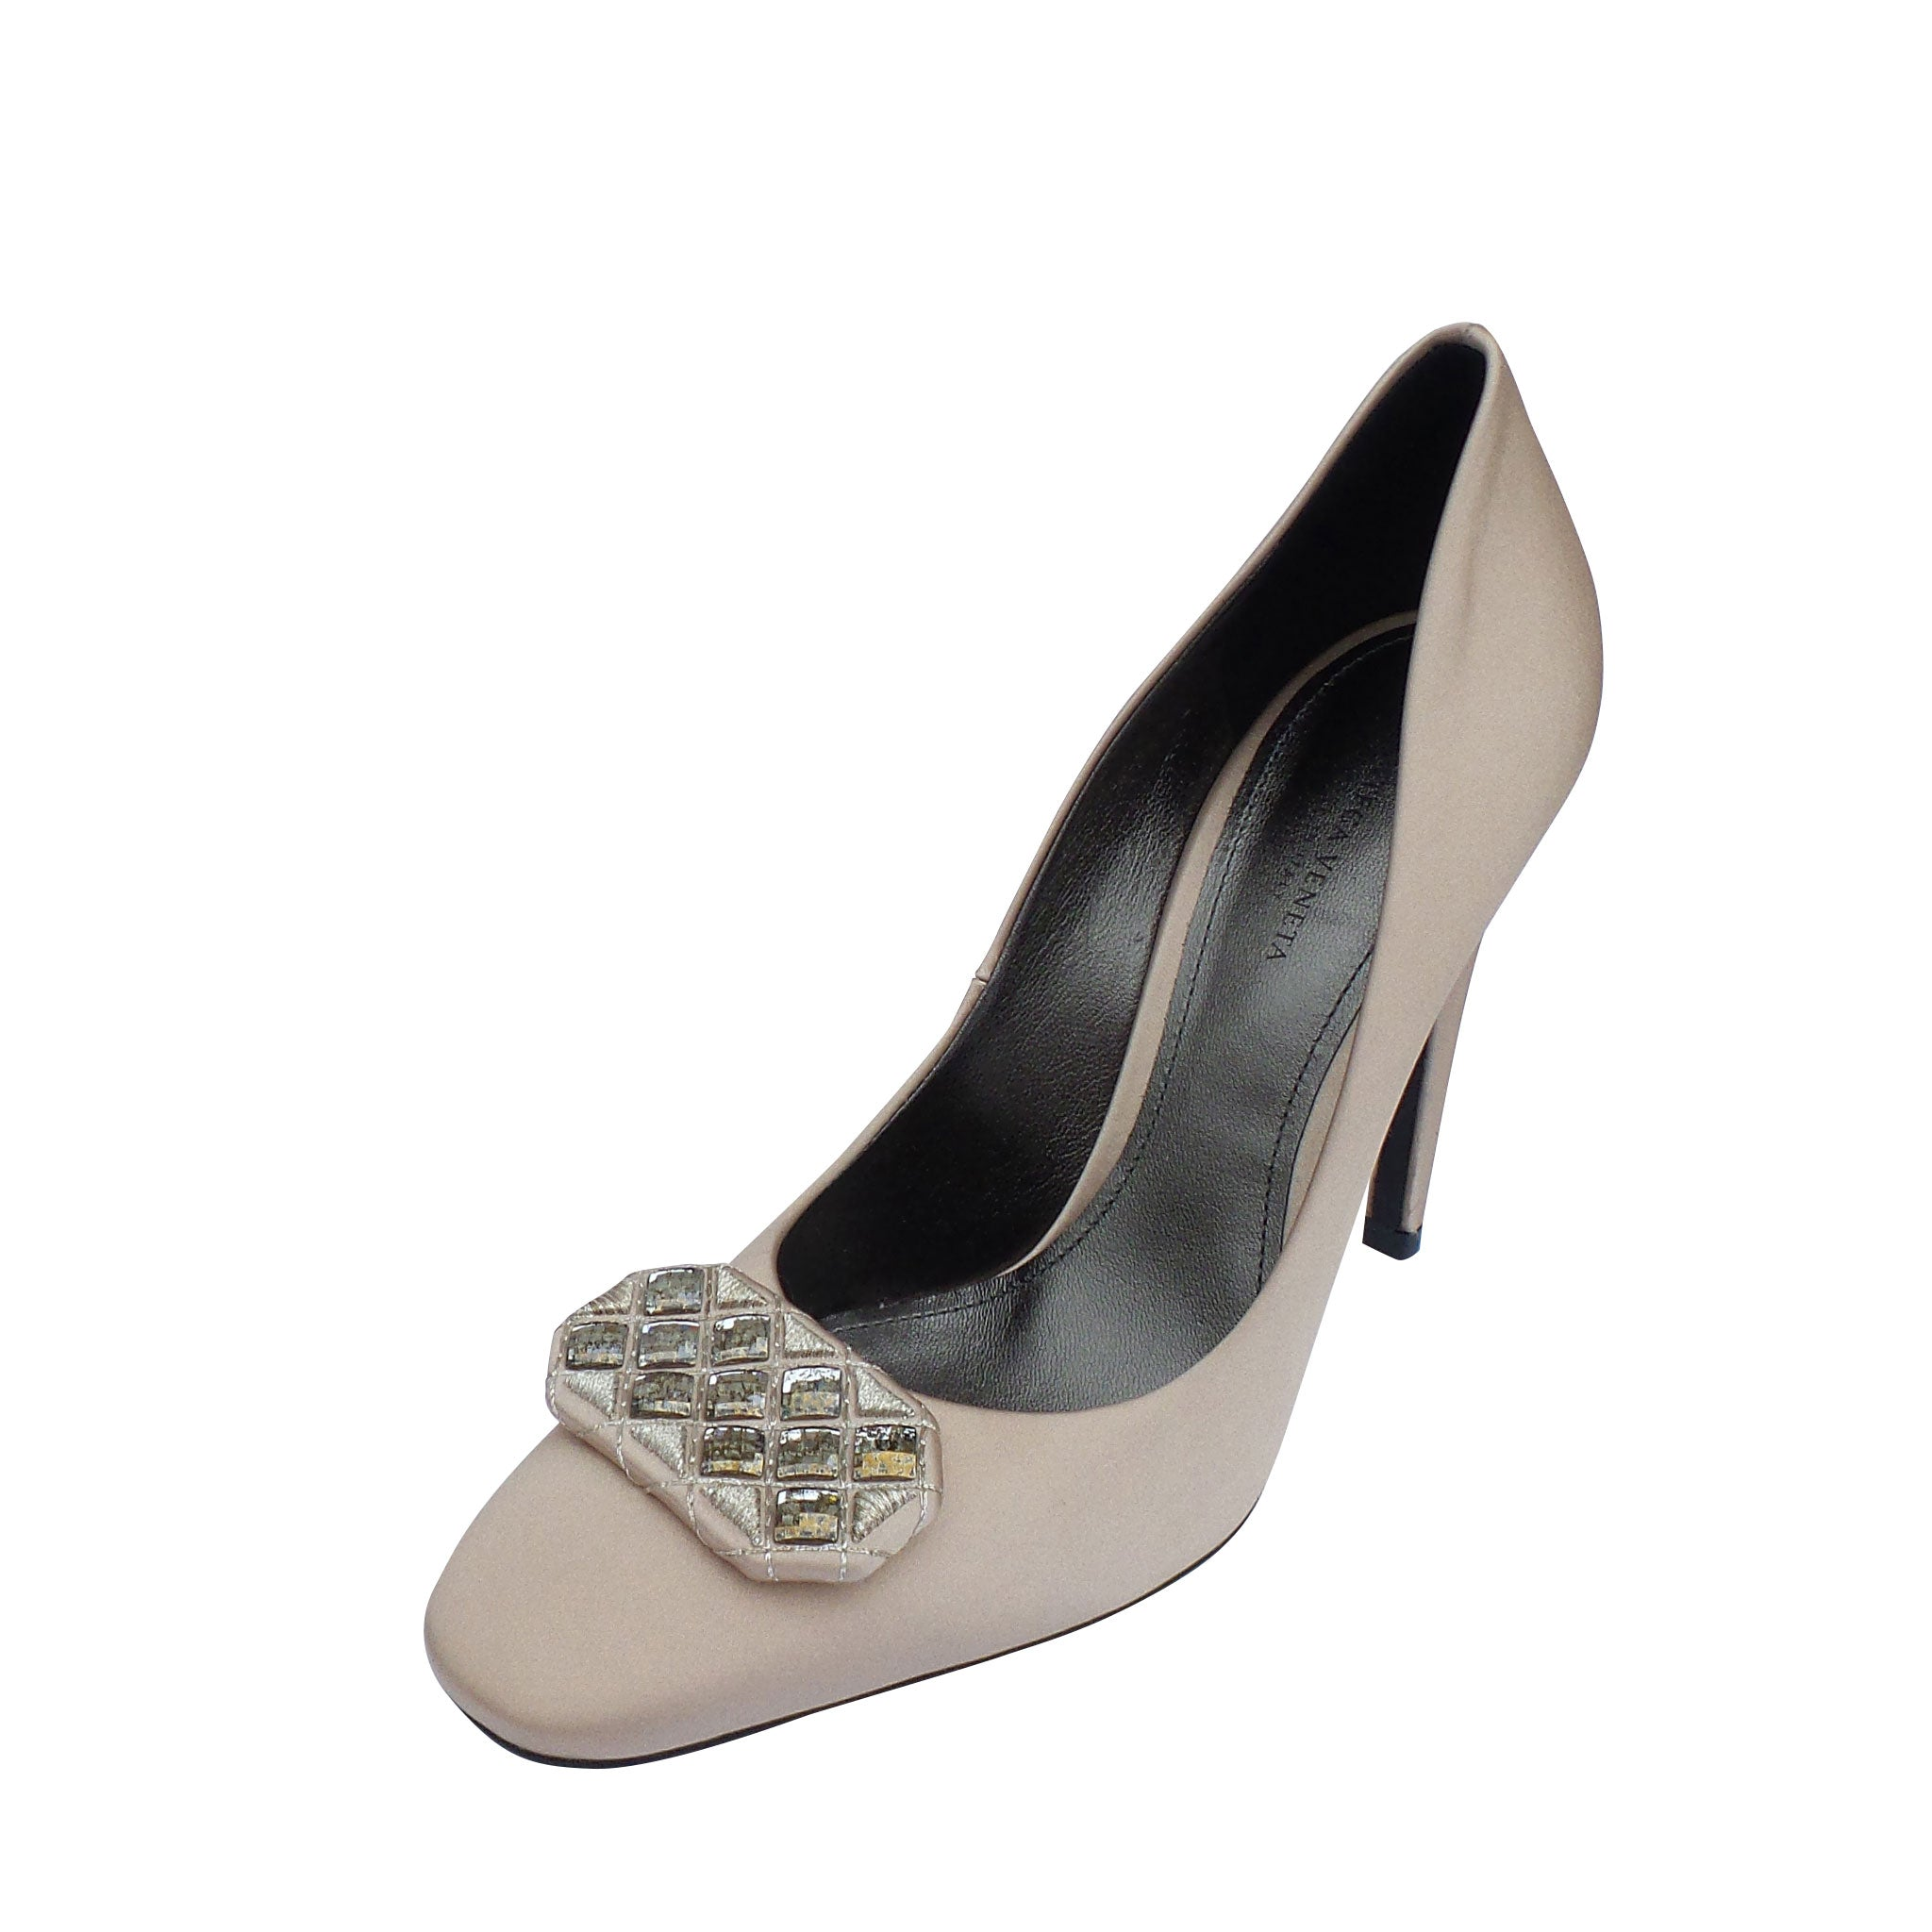 d0357f54e72c BOTTEGA VENETA Beige Nude Satin Crystal Embellished Pumps 37 EC – Encore  Resale.com